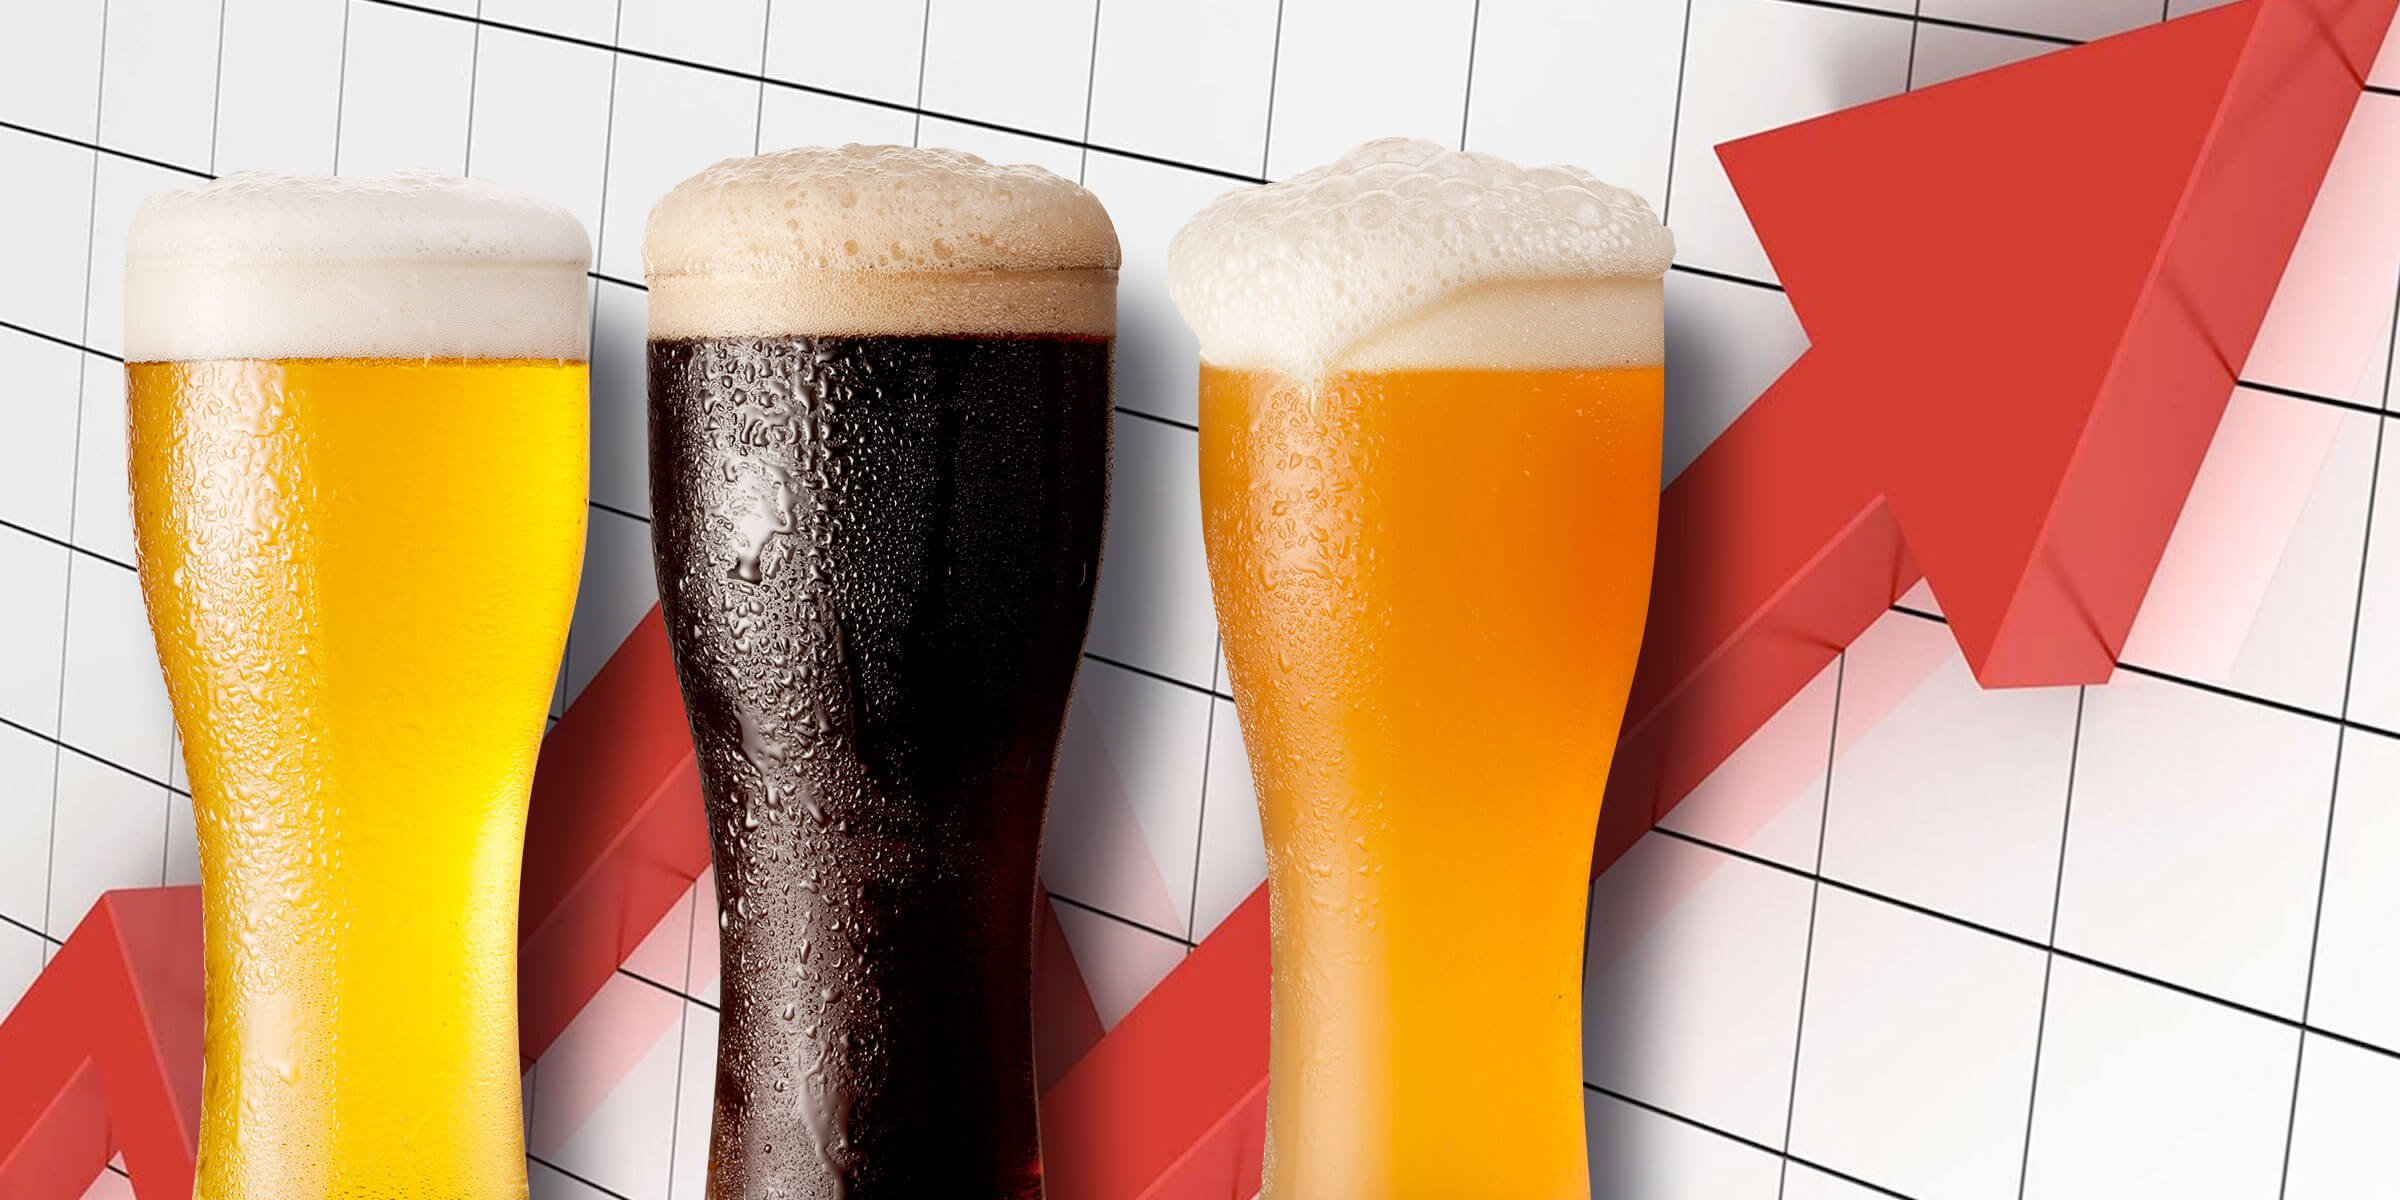 Chart shows growth of beer segment over time.